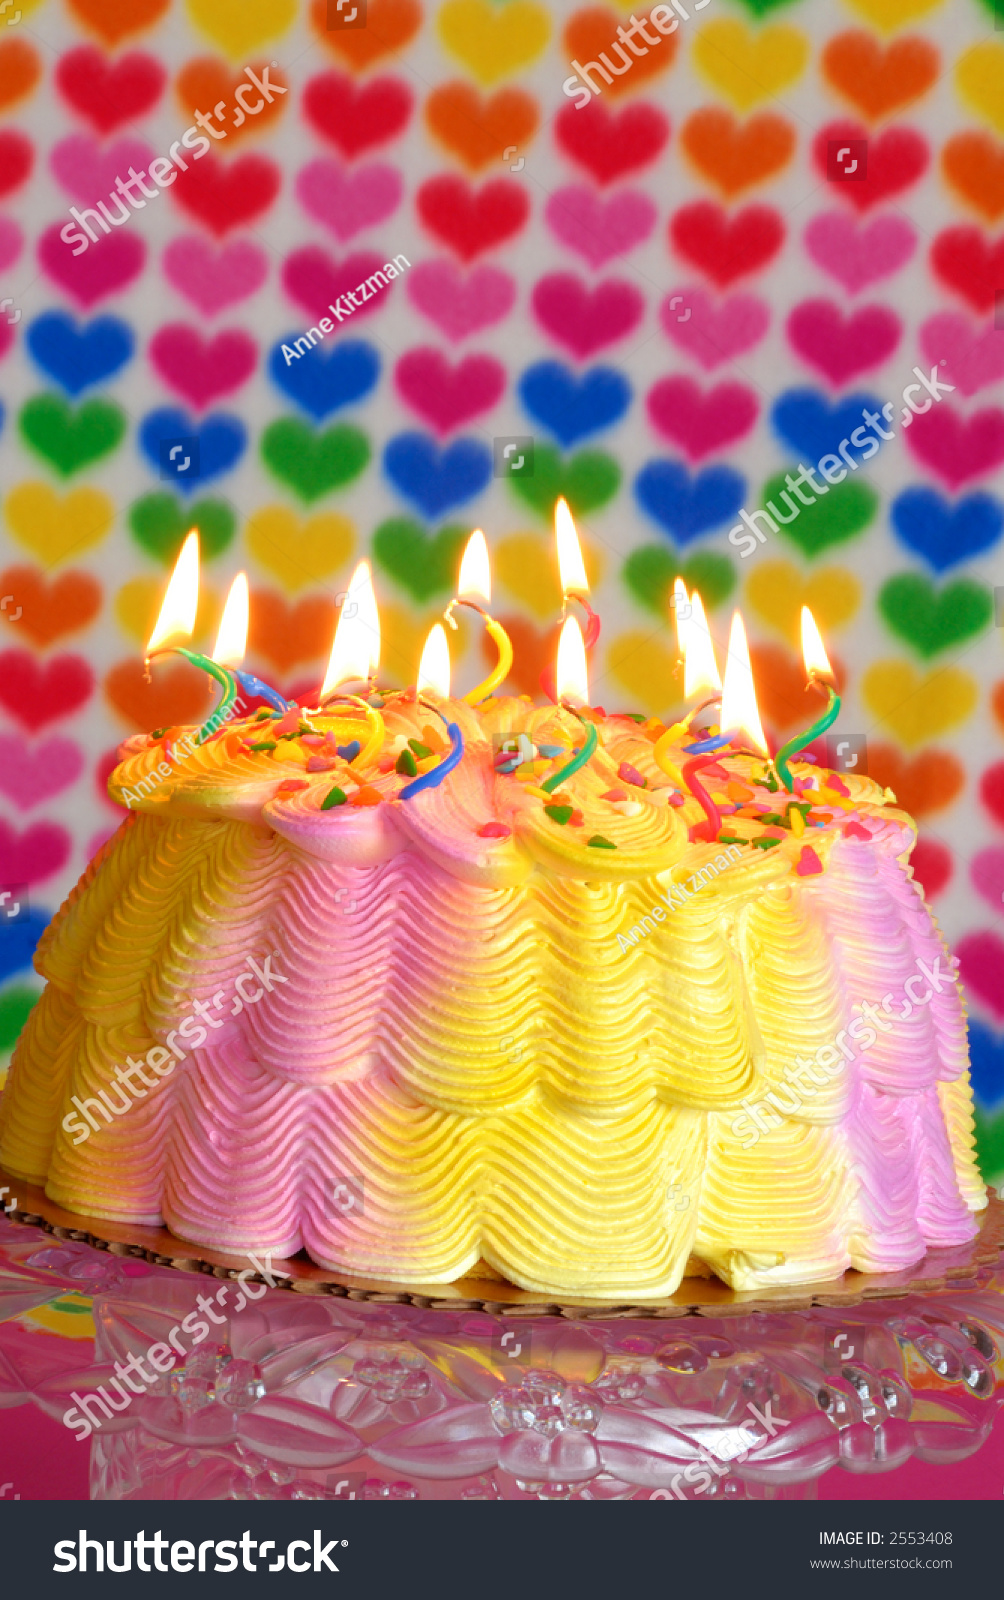 Valentine Birthday Cake Lighted Candles On Stock Photo Edit Now